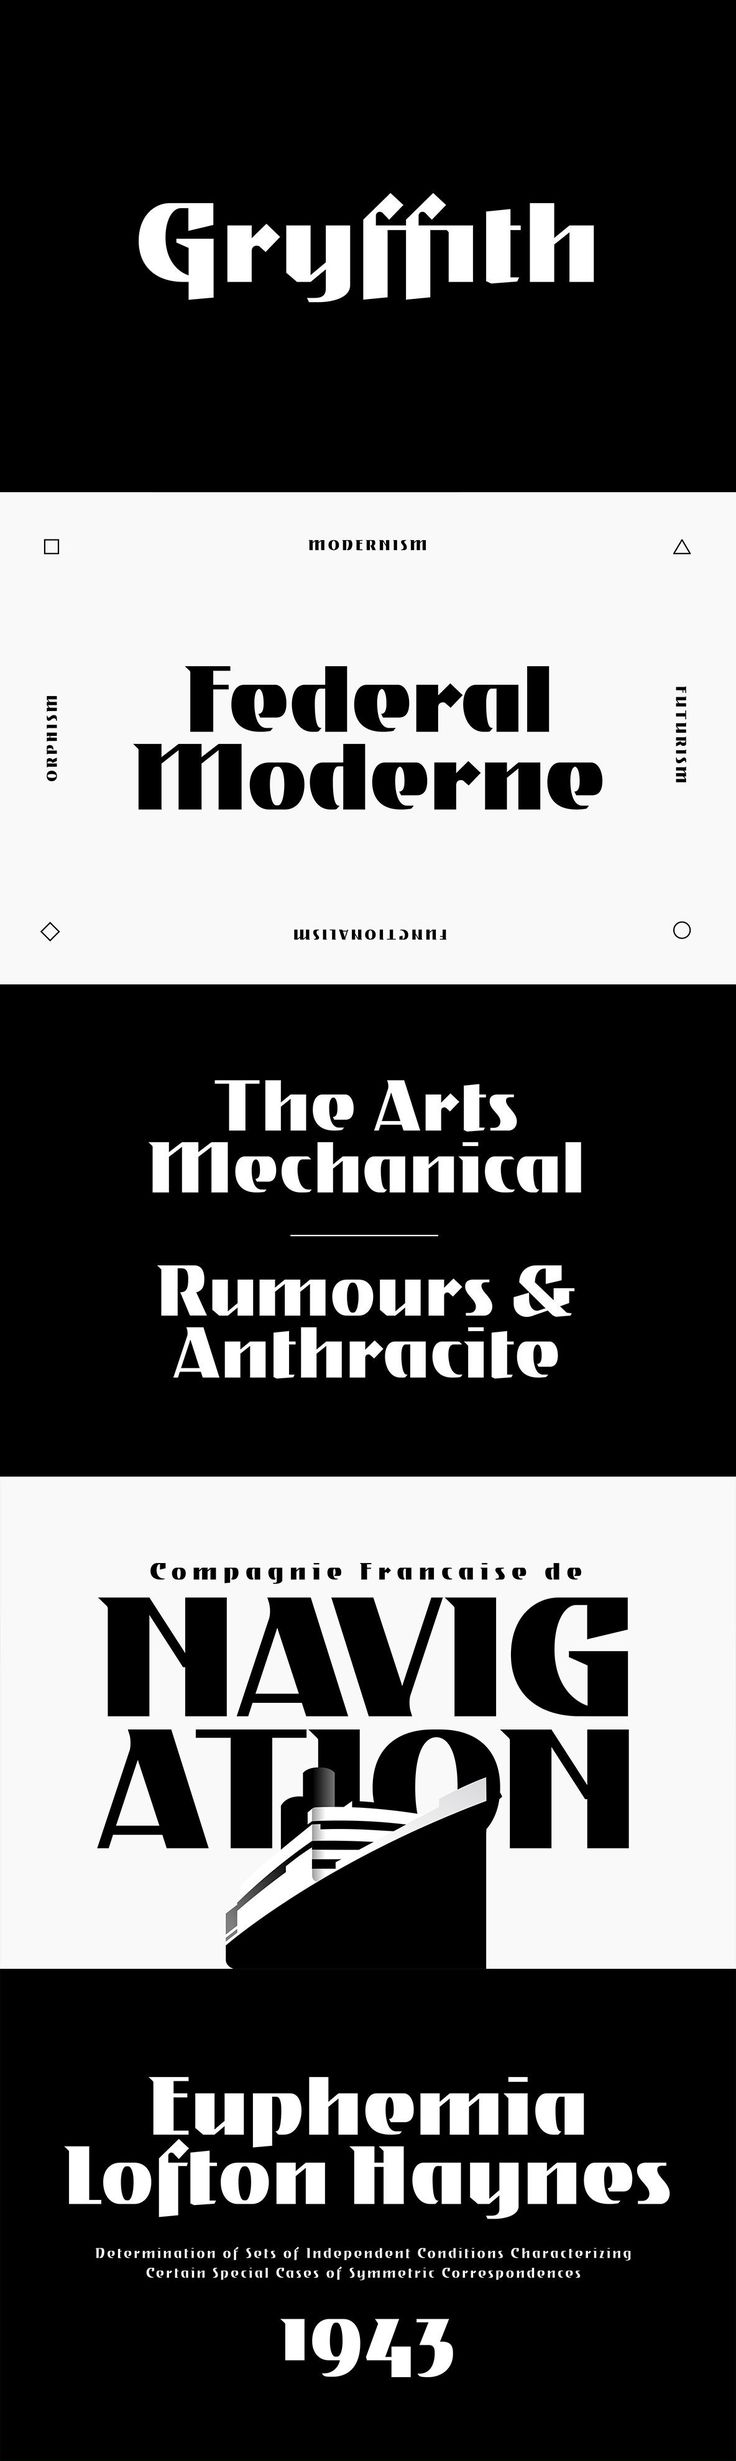 Gryffith CF - Gryffith is a display typeface blending a wide range of influences from medieval calligraphy to art deco lettering to high technology. Strange, captivating, and elegant, Gryffith is especially useful for logos, headlines, posters, and artwork. The t...